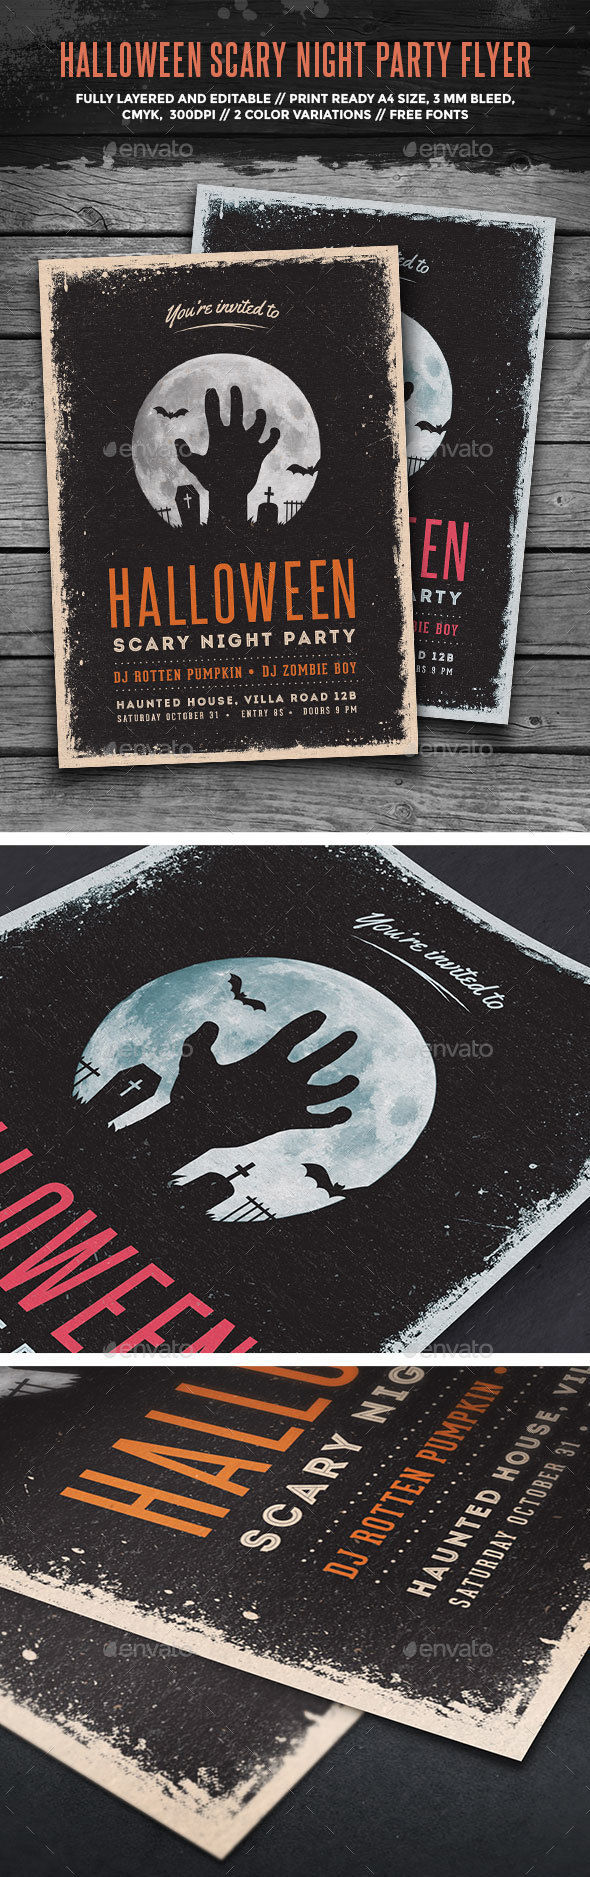 Halloween Scary Night Party Flyer by GraphicGoods (Halloween party flyer)